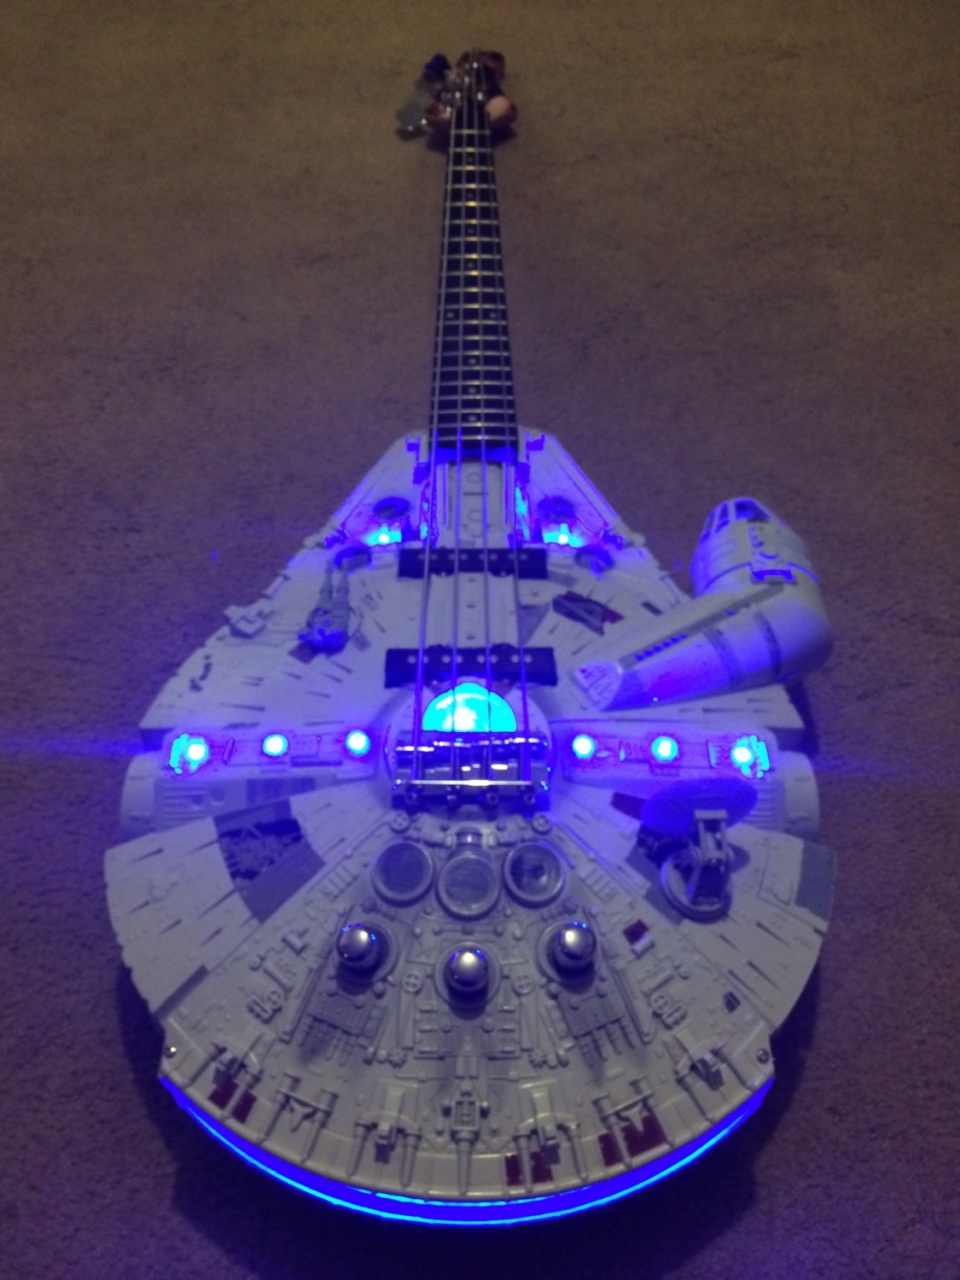 Millenium Falcon Rebel Bass Guitar